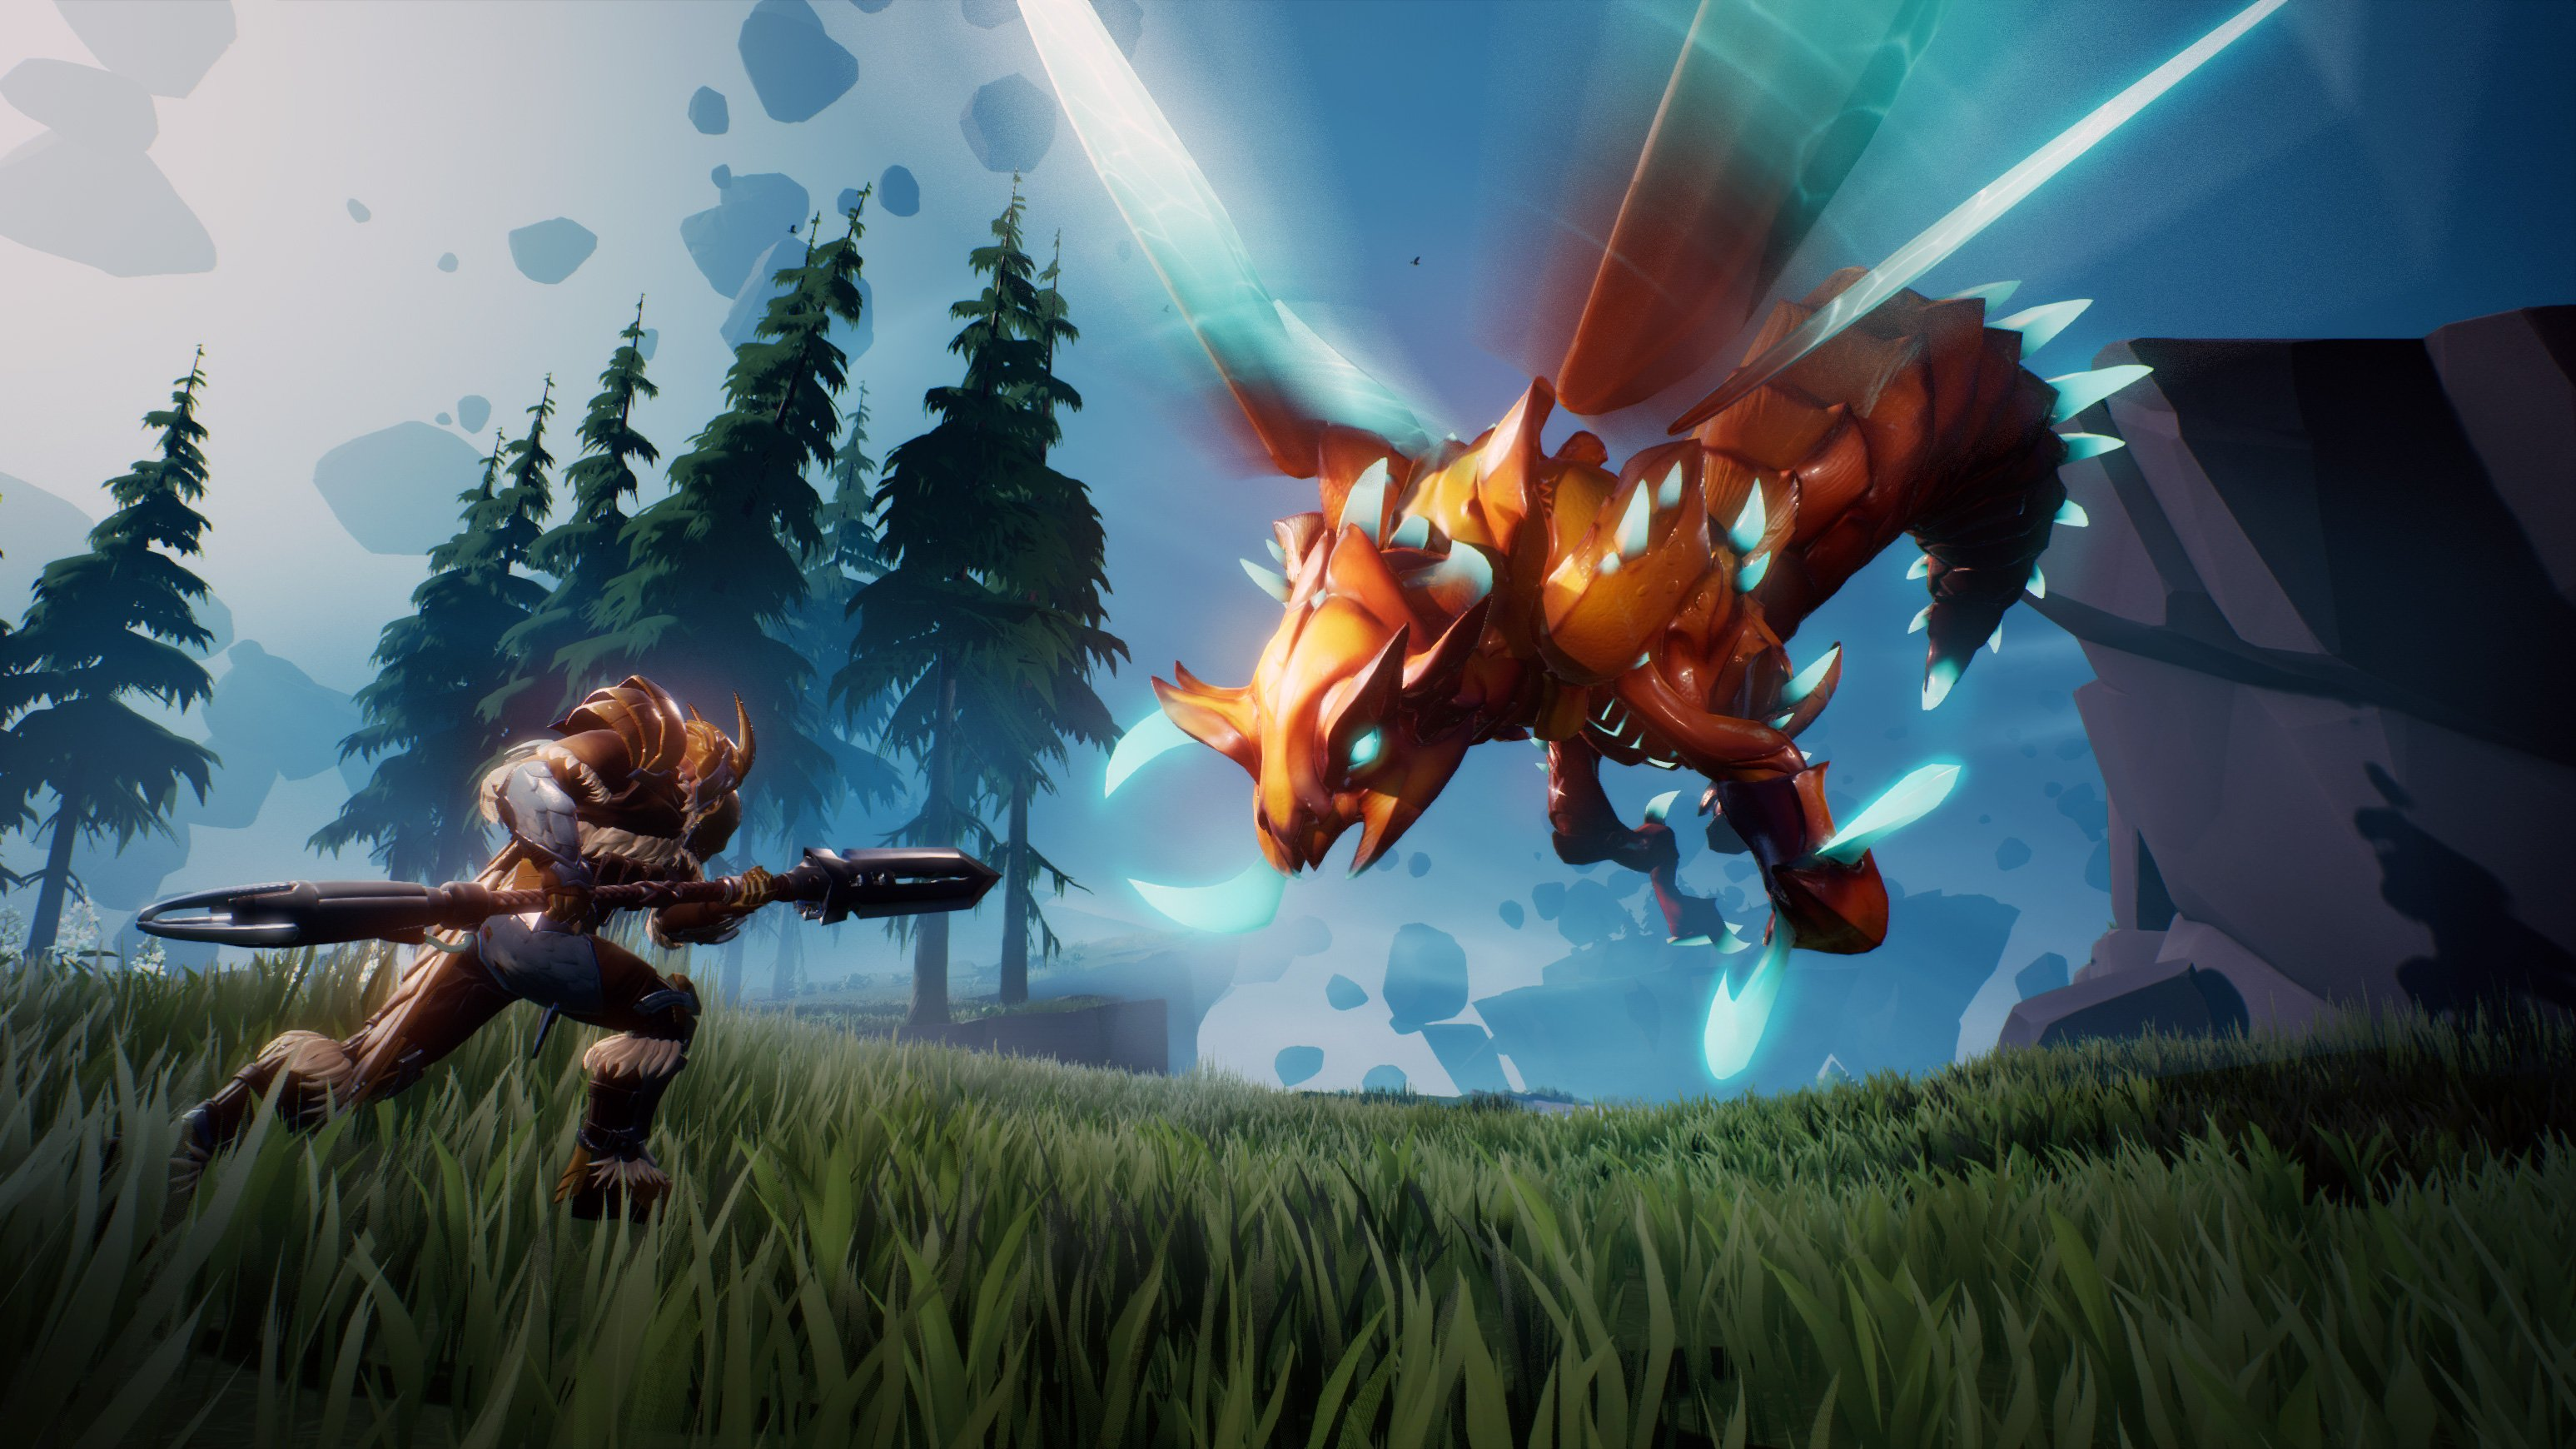 Comment interrompre les Béhémothes dans Dauntless